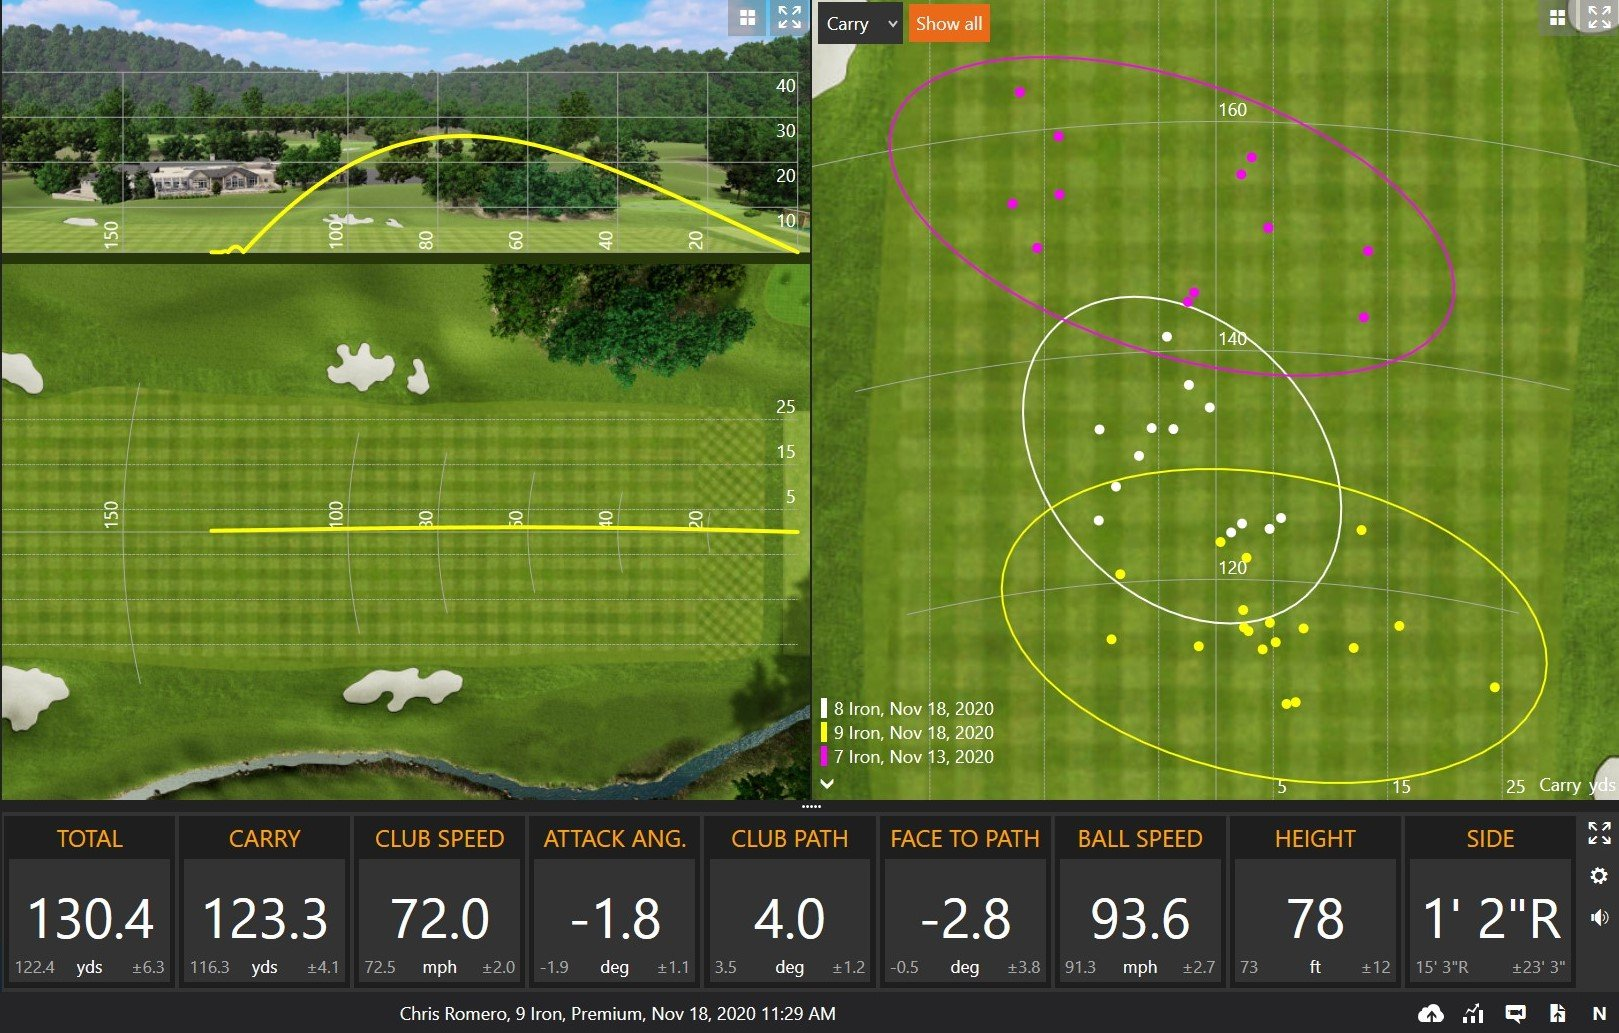 Lower Your Handicap at GolfCave with TrackMan